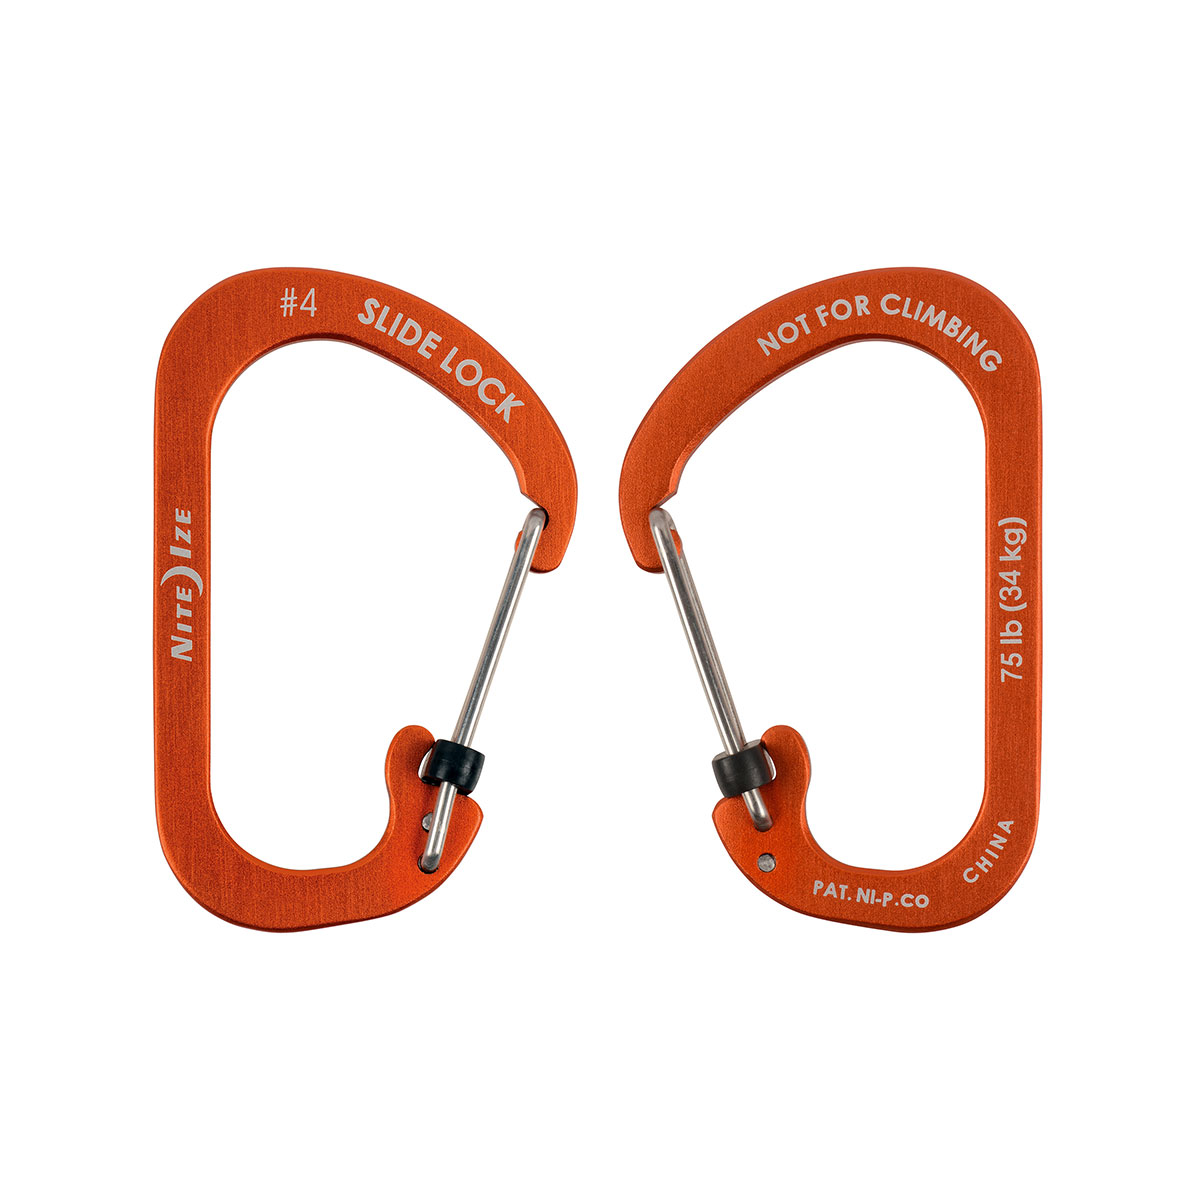 SlideLock Carabiner Aluminum #4 - Orange